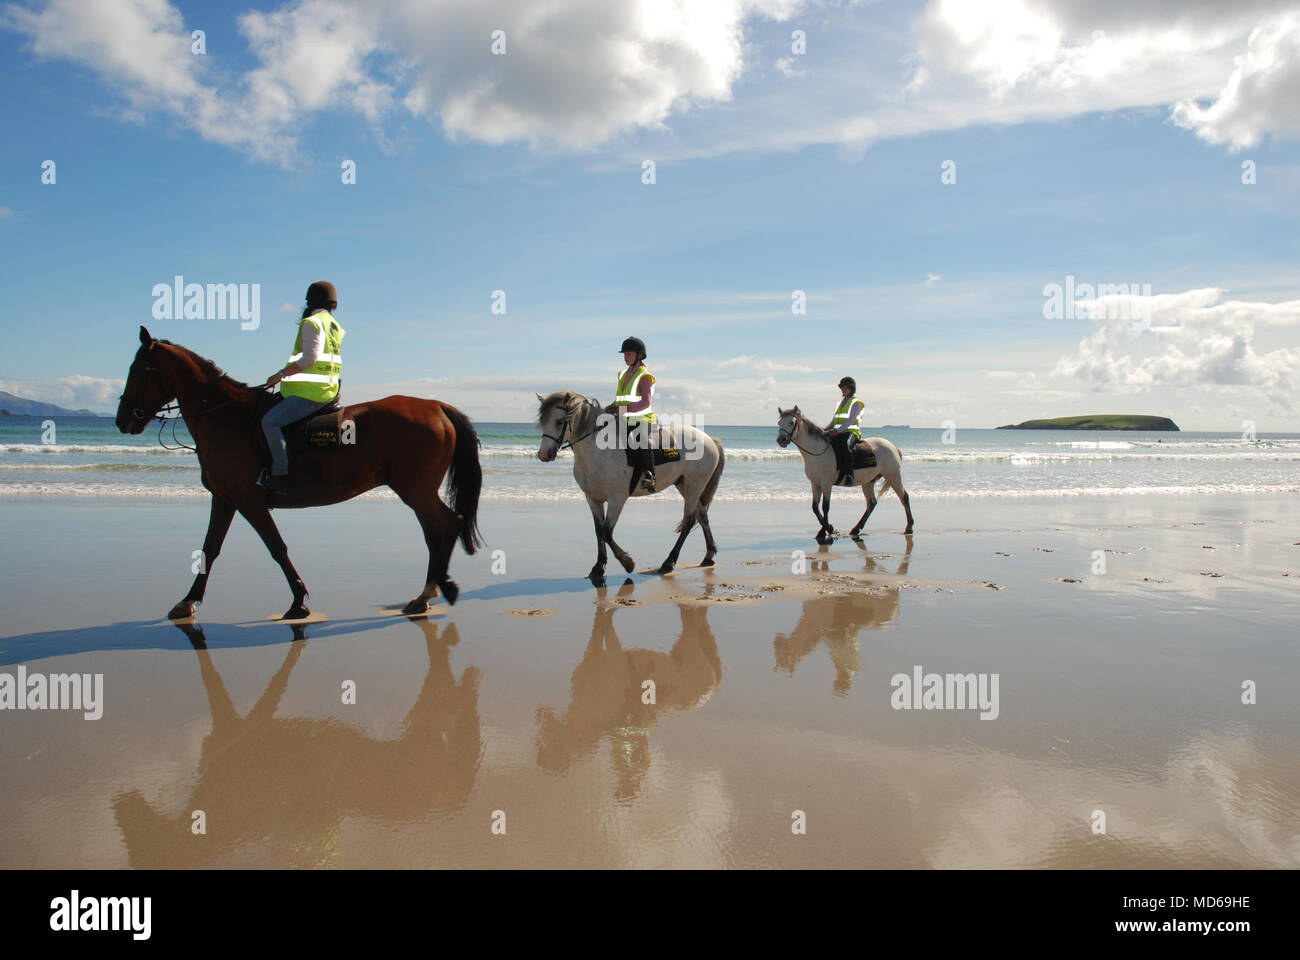 Three Horses, Ponies walking on a beach with riders on the west coast of Ireland - Stock Image